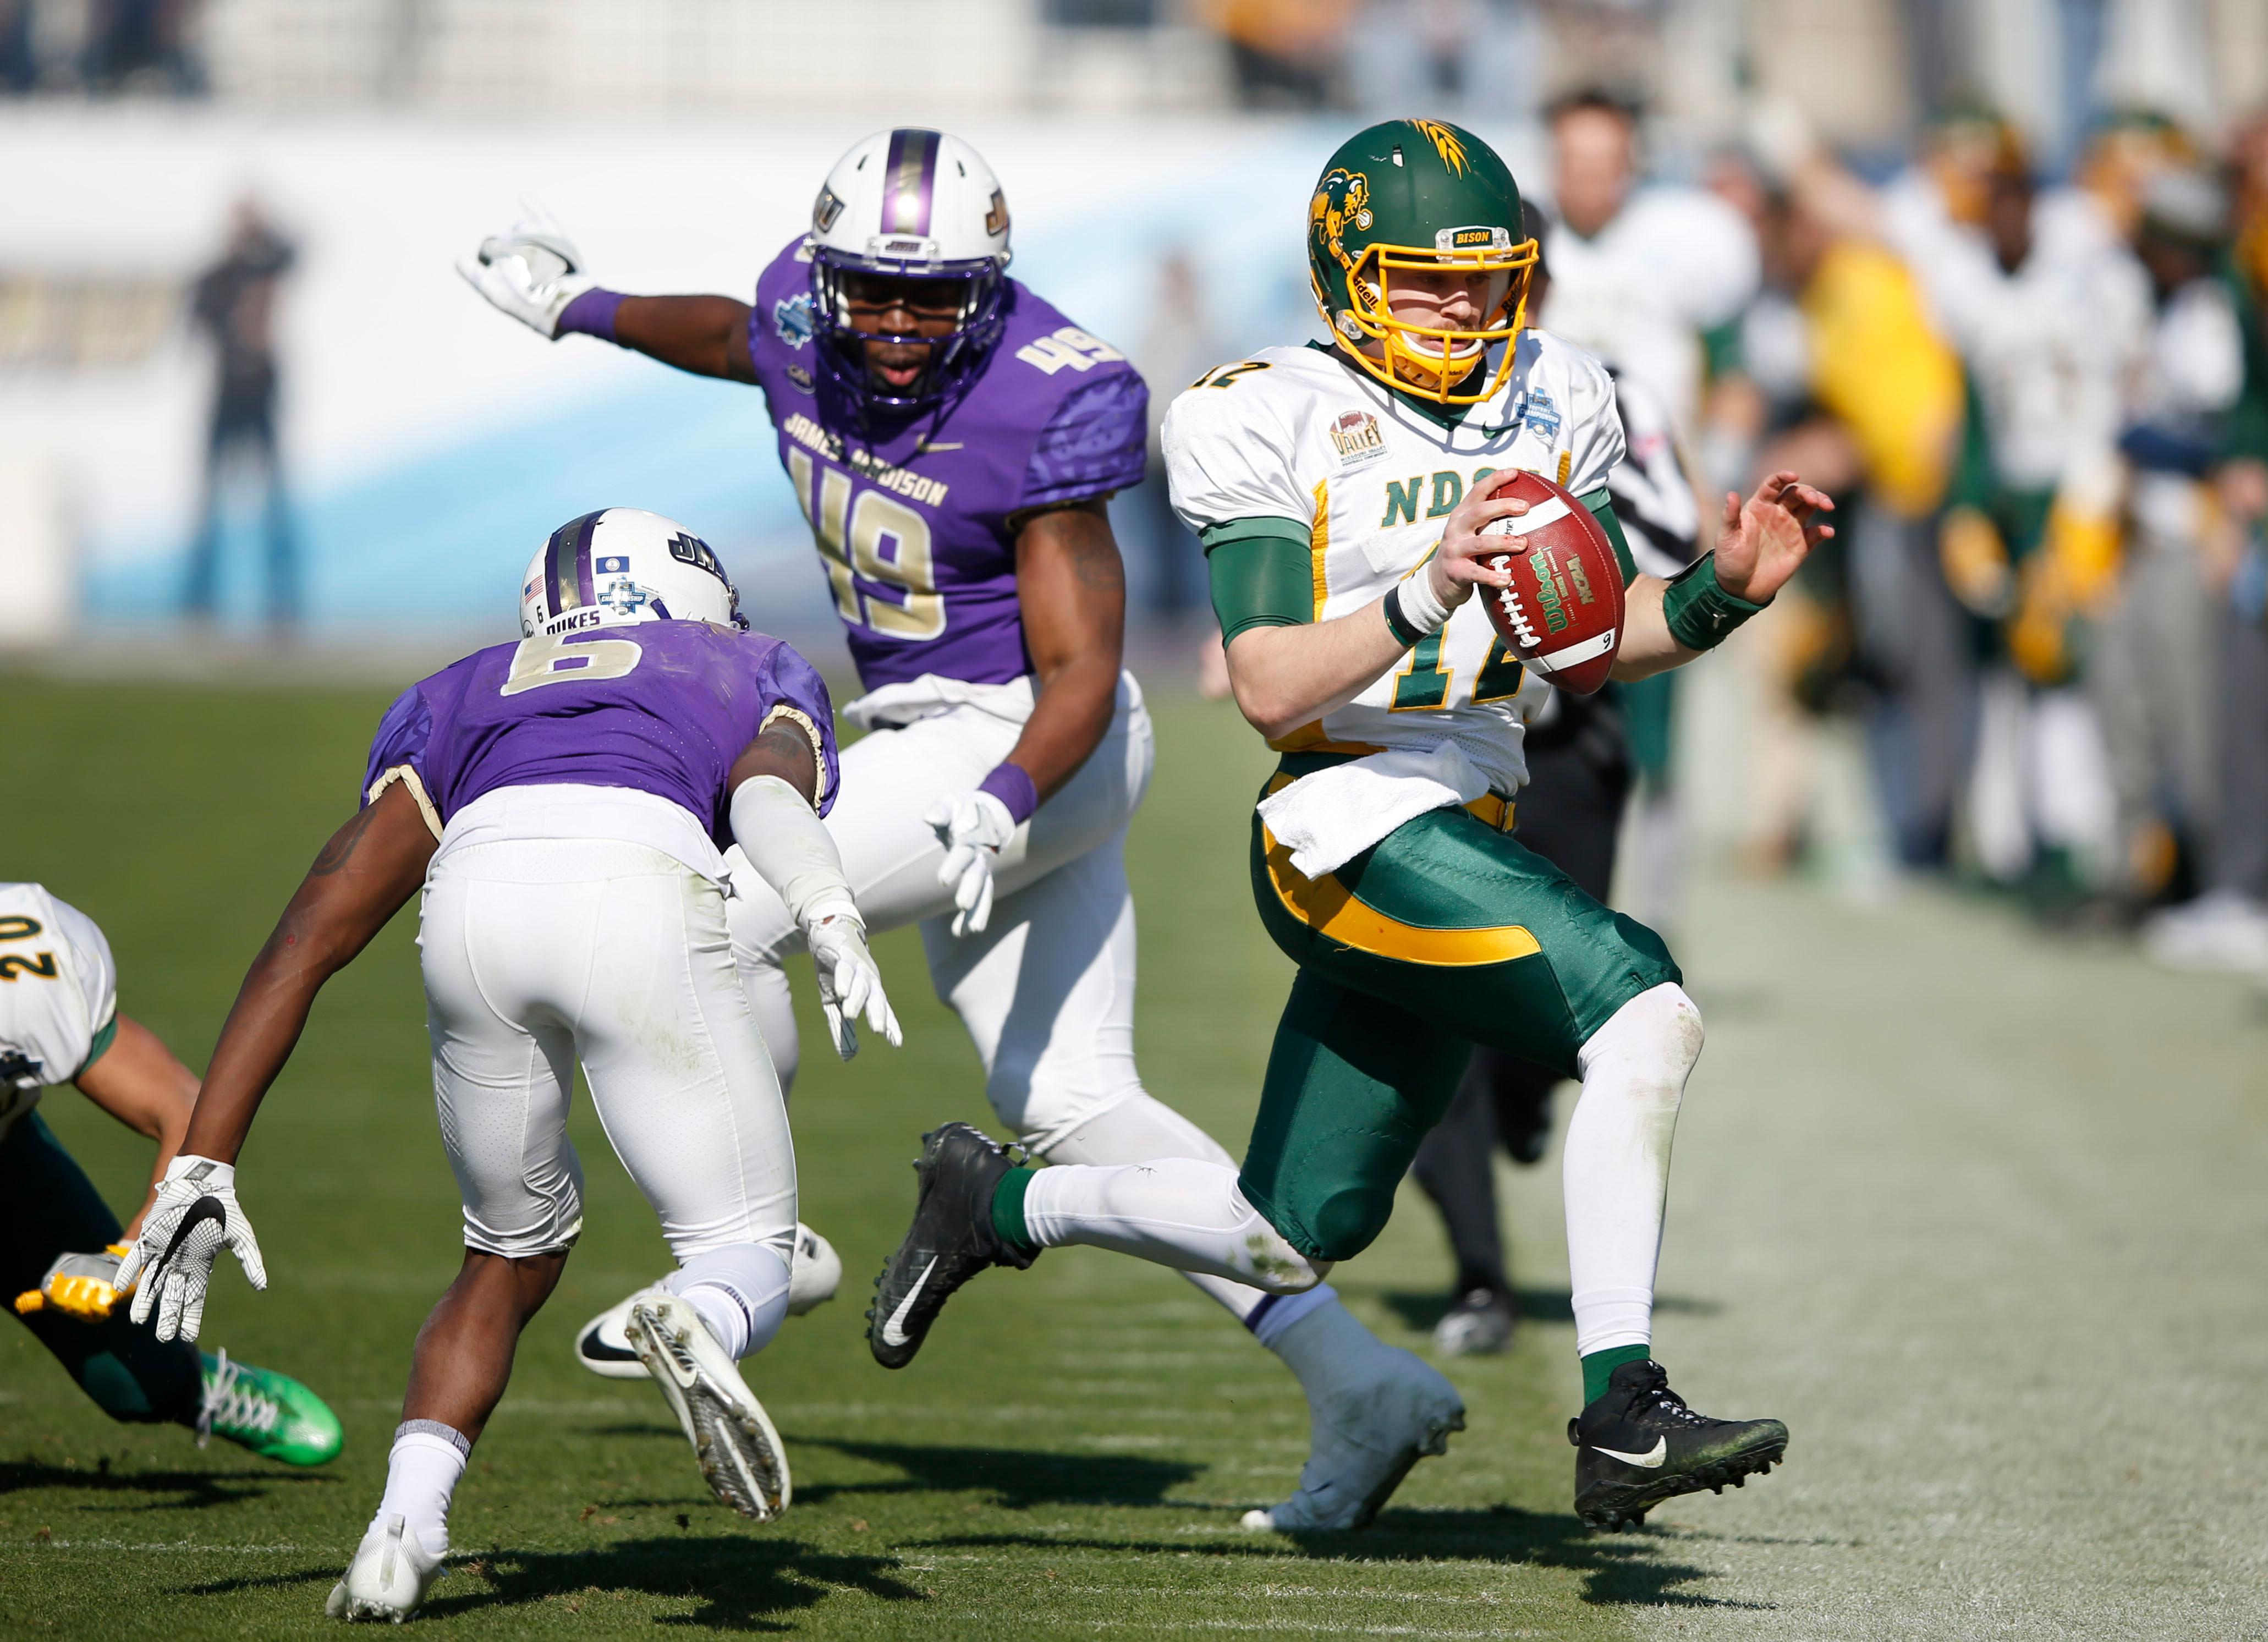 North Dakota State quarterback Easton Stick (12) runs out of bounds after making the first down as James Madison cornerback Jimmy Moreland (6) closes in on the play during the first half  in the FCS championship NCAA college football game at Toyota Stadium in Frisco, Texas, Saturday, Jan. 6, 2017. (Vernon Bryant/The Dallas Morning News via AP)